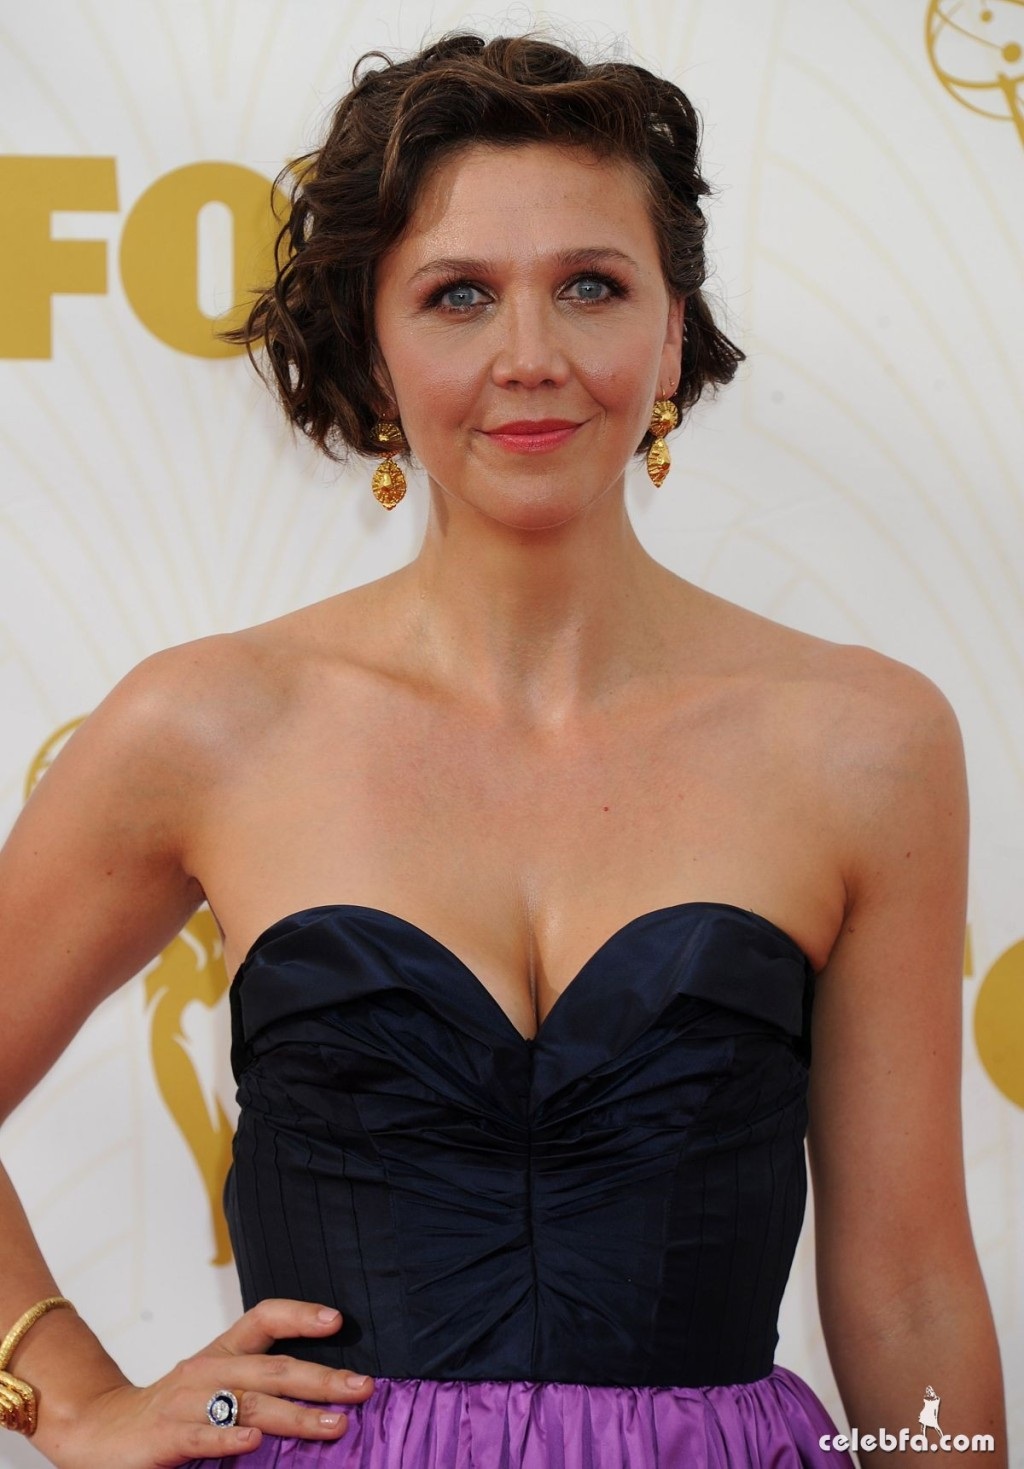 maggie-gyllenhaal-at-2015-emmy-awards (1)